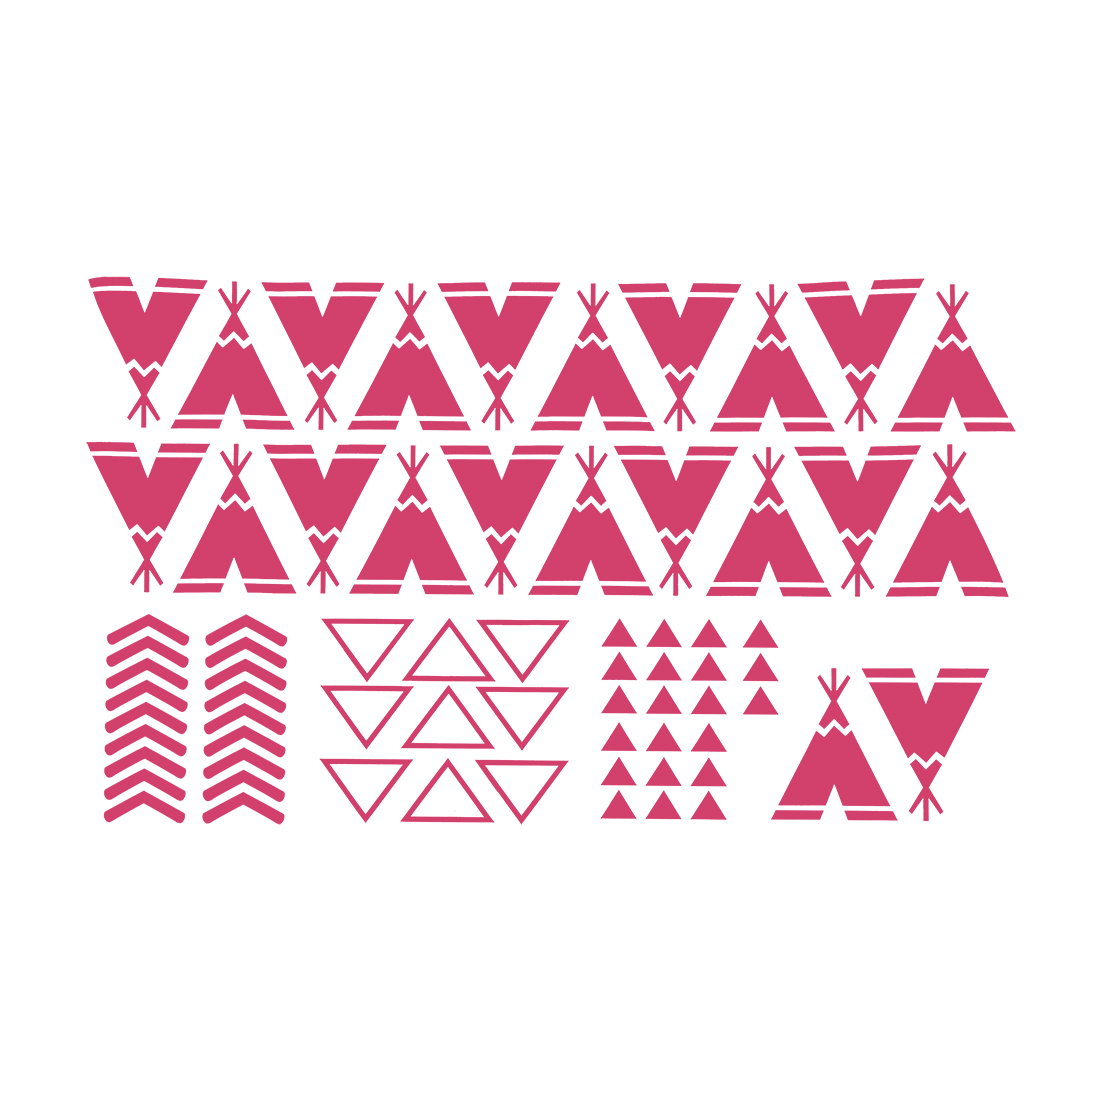 Fuchsia Teepee Pattern Wall Stickers Removable Decals for Living Room Bedroom